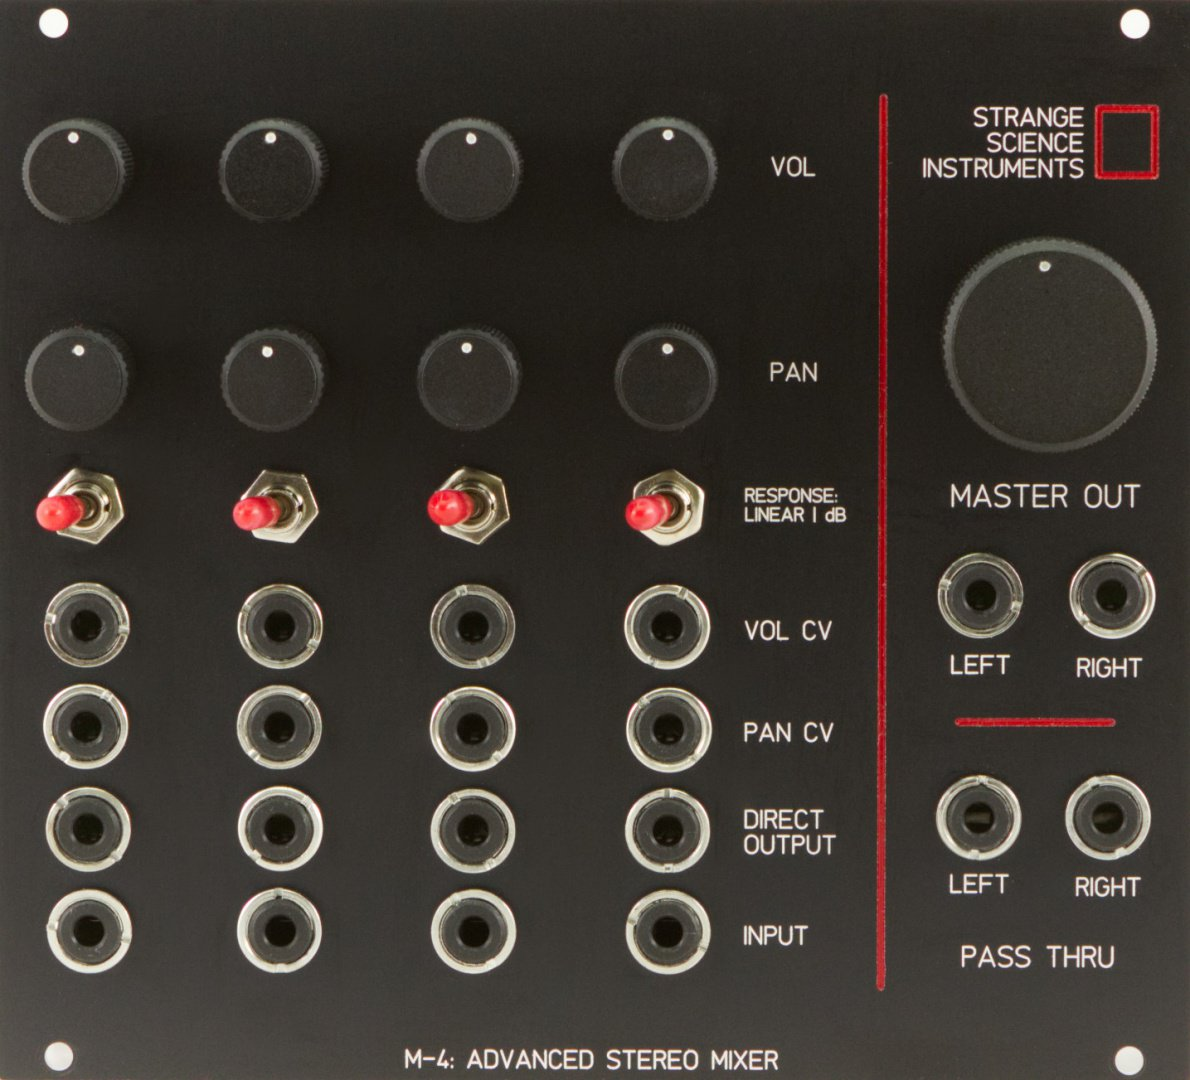 Eurorack Stereo Mixer Module Comparison Modular Audio With Multiple Input Channels Grid